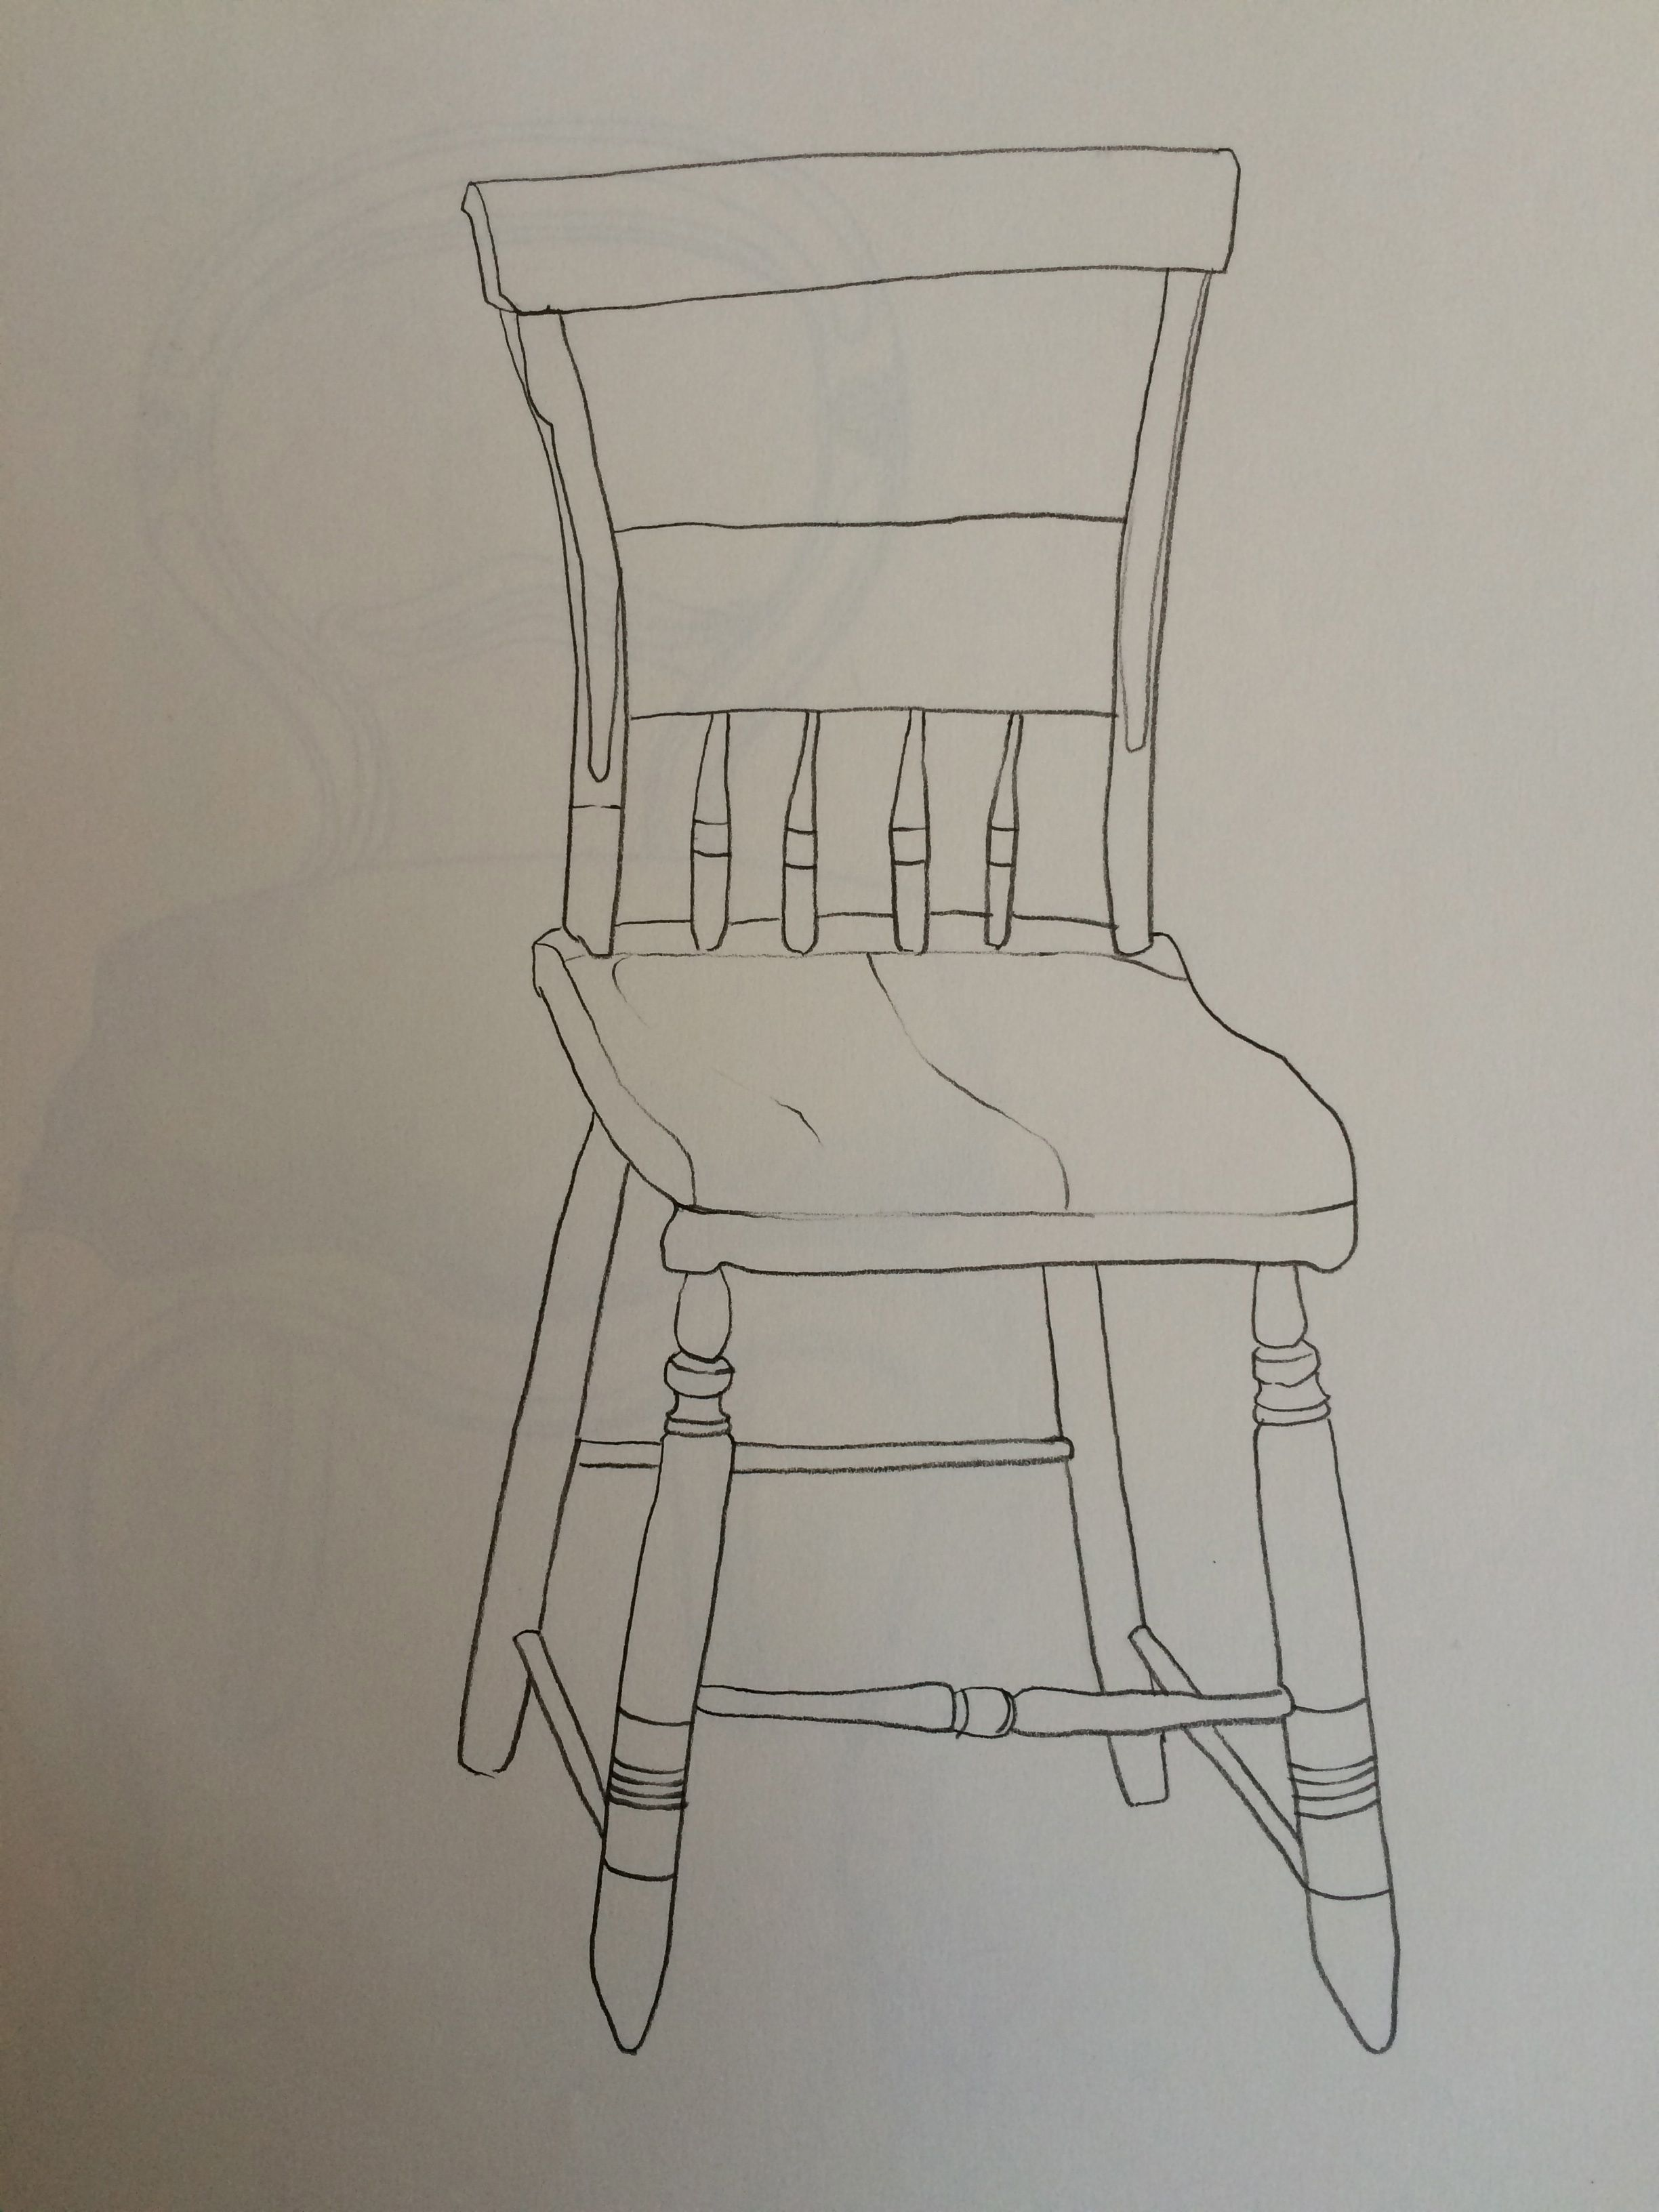 How to draw a chair in pencil step by step